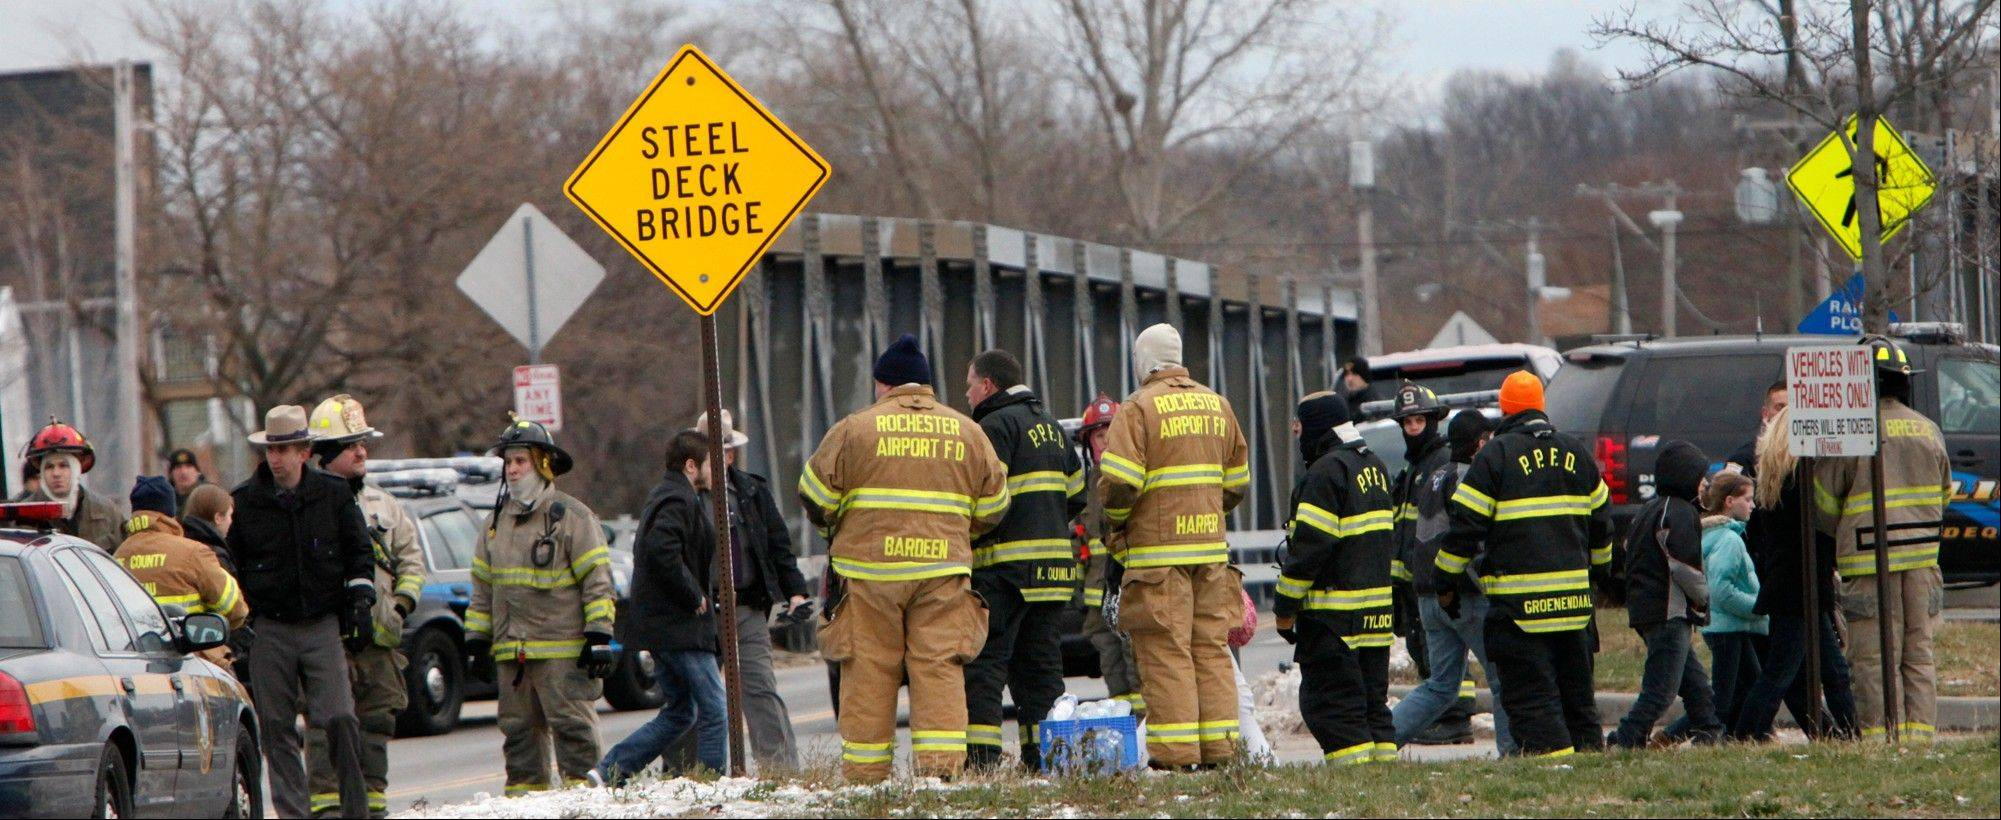 Residents are evacuated from the neighborhood, Monday, Dec. 24, 2012 in Webster, New York. A former convict set a house and car ablaze in his lakeside New York state neighborhood to lure firefighters then opened fire on them, killing two and engaging police in a shootout before killing himself while several homes burned. Authorities used an armored vehicle to evacuate the area.